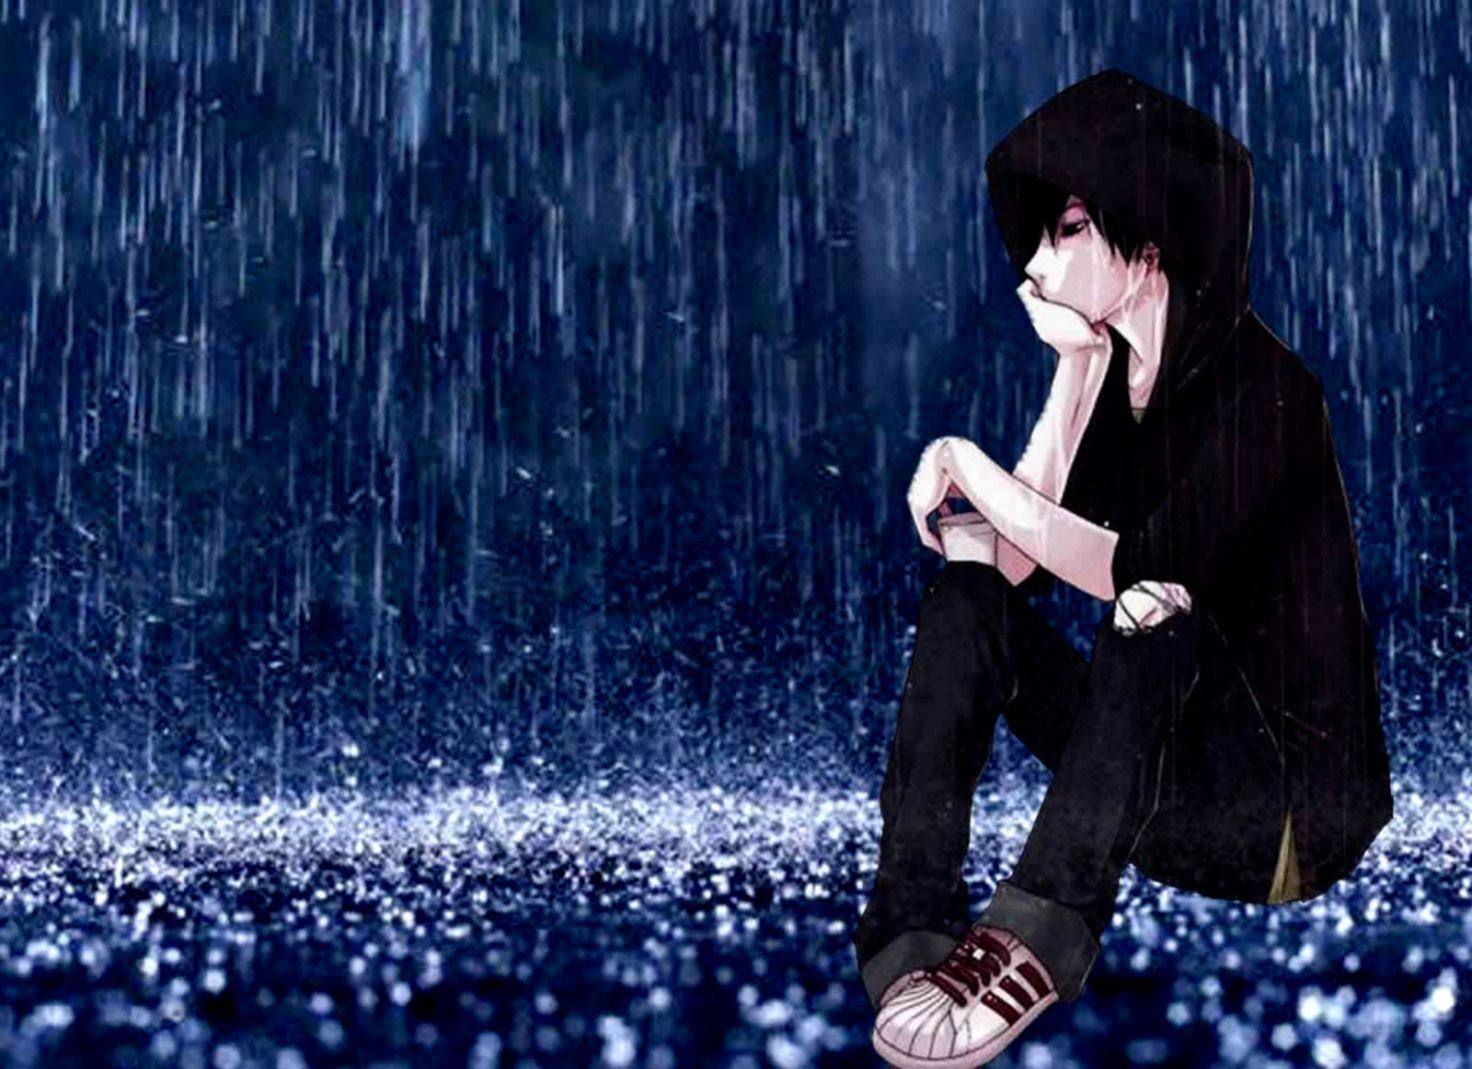 Alone Boy Latest Hd Wallpapers Free Download Wallpapers Awards